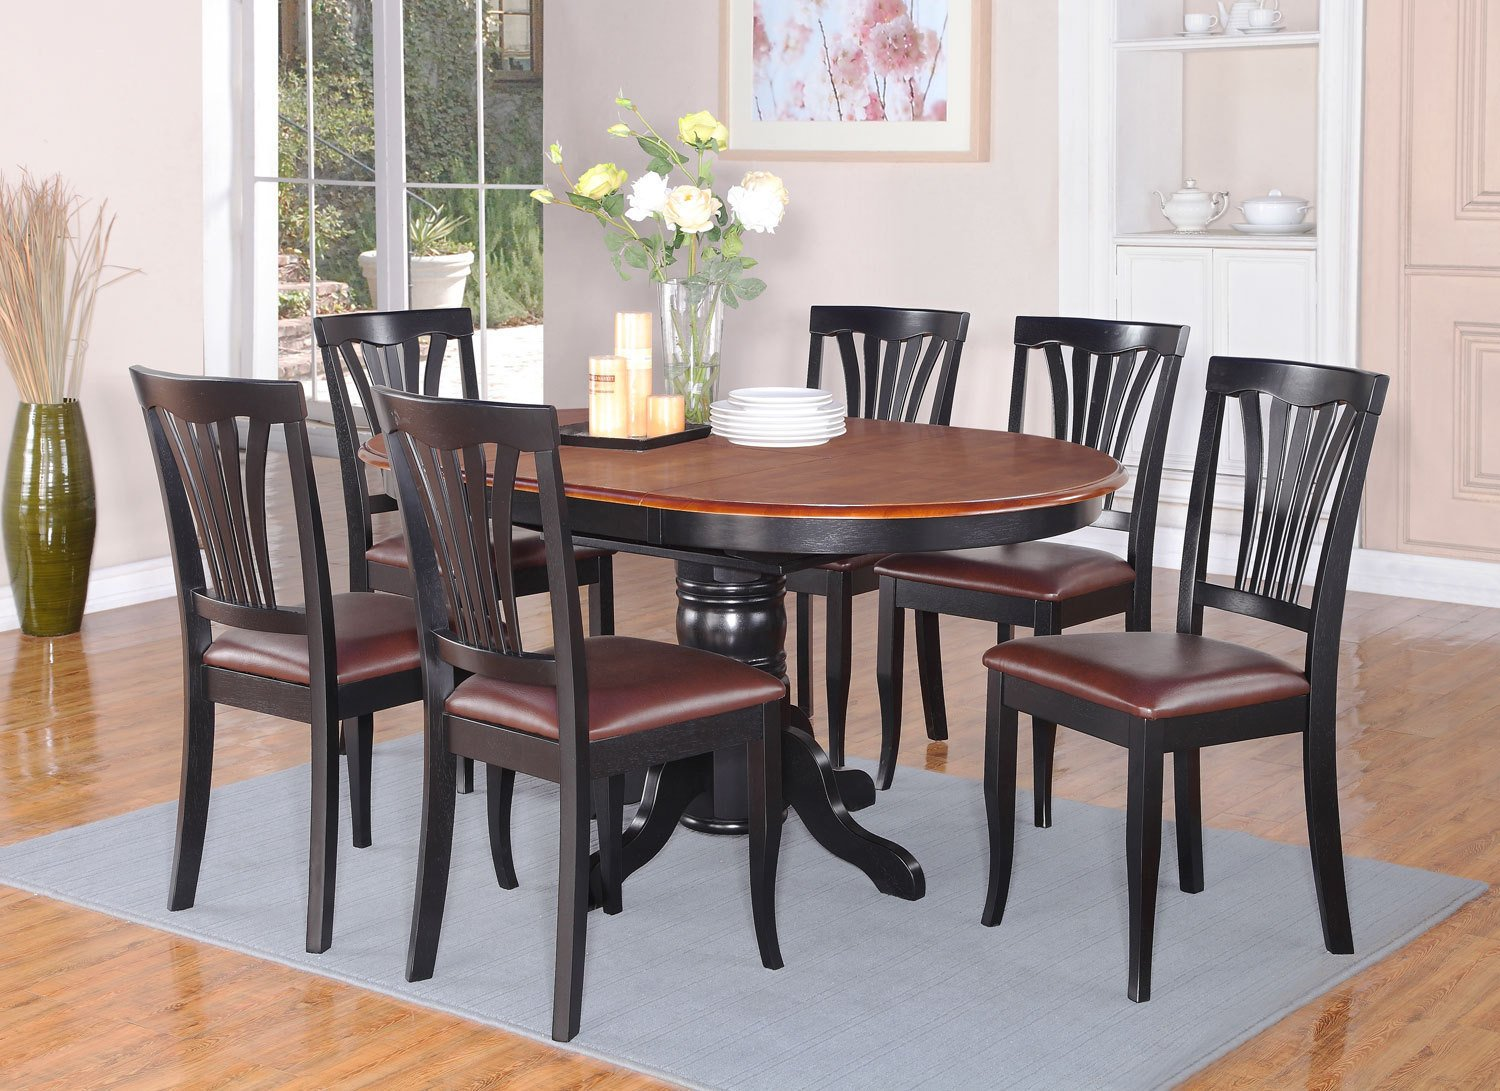 7pc dining room set oval table and 4 faux leather upholstered seat